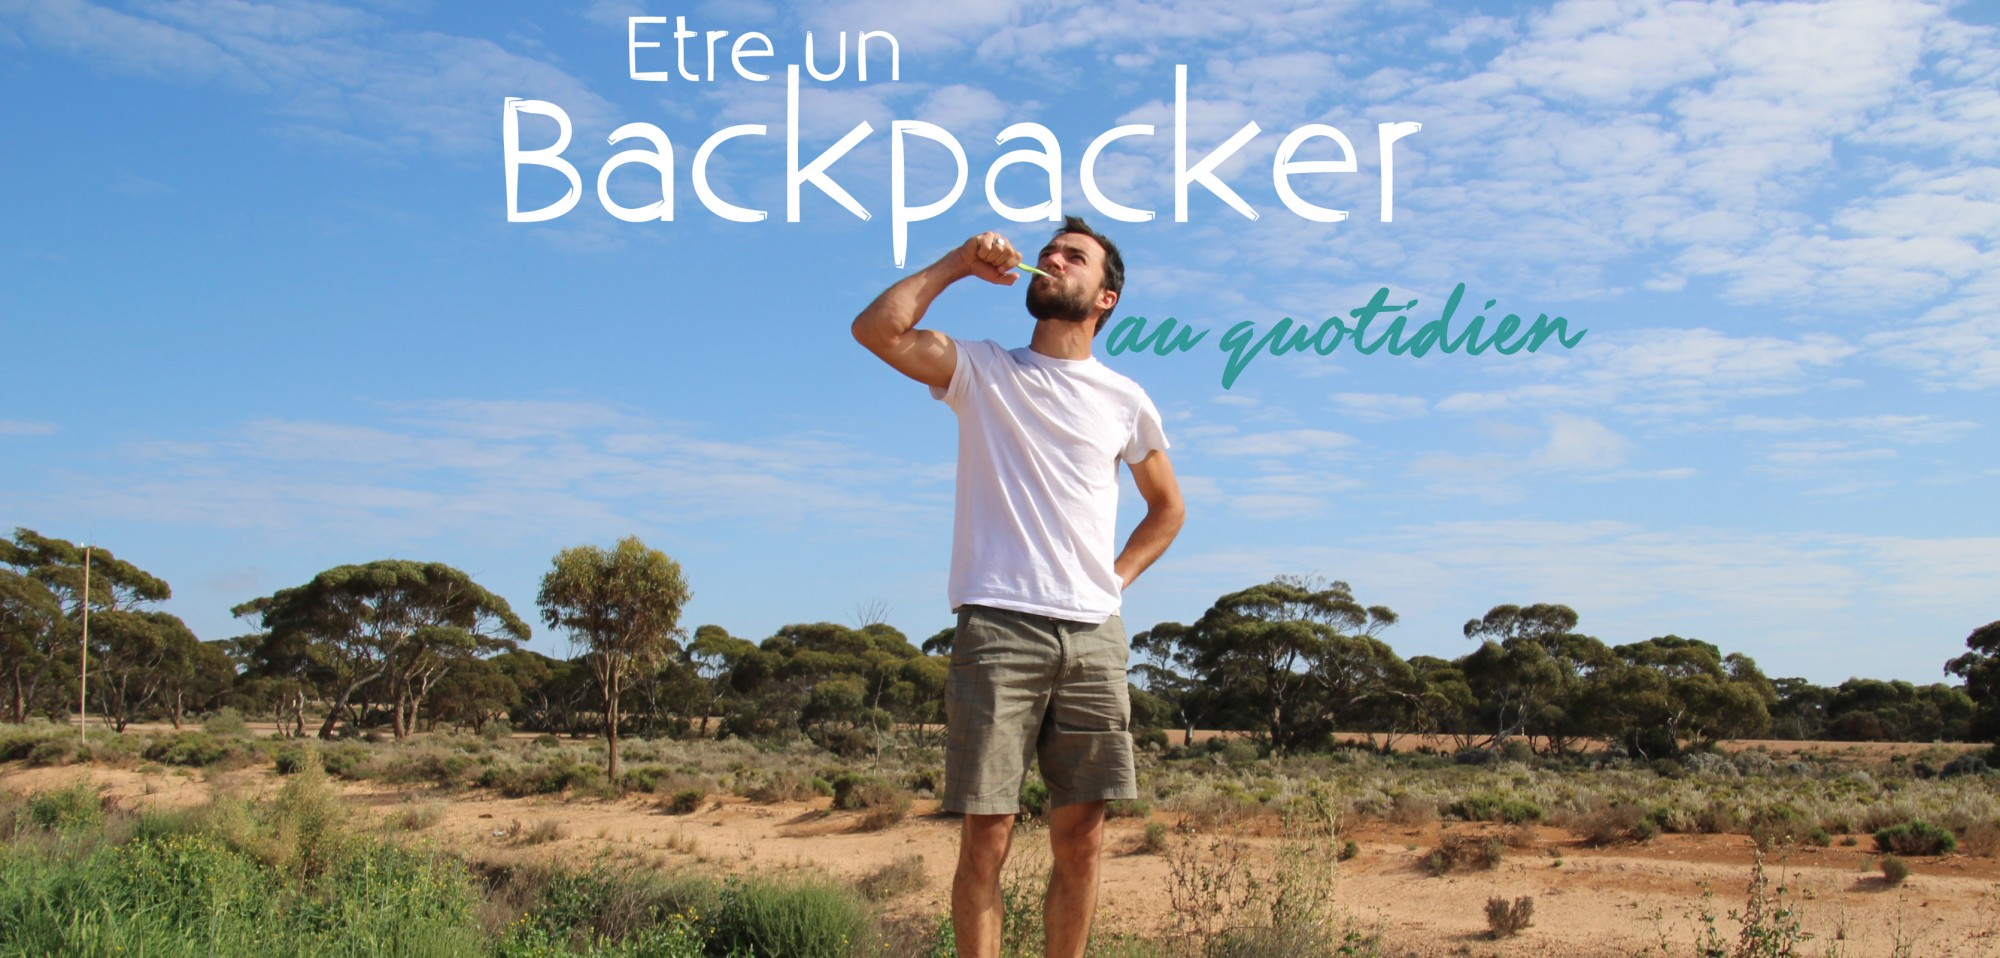 Les 10 photos du quotidien d'un backpacker